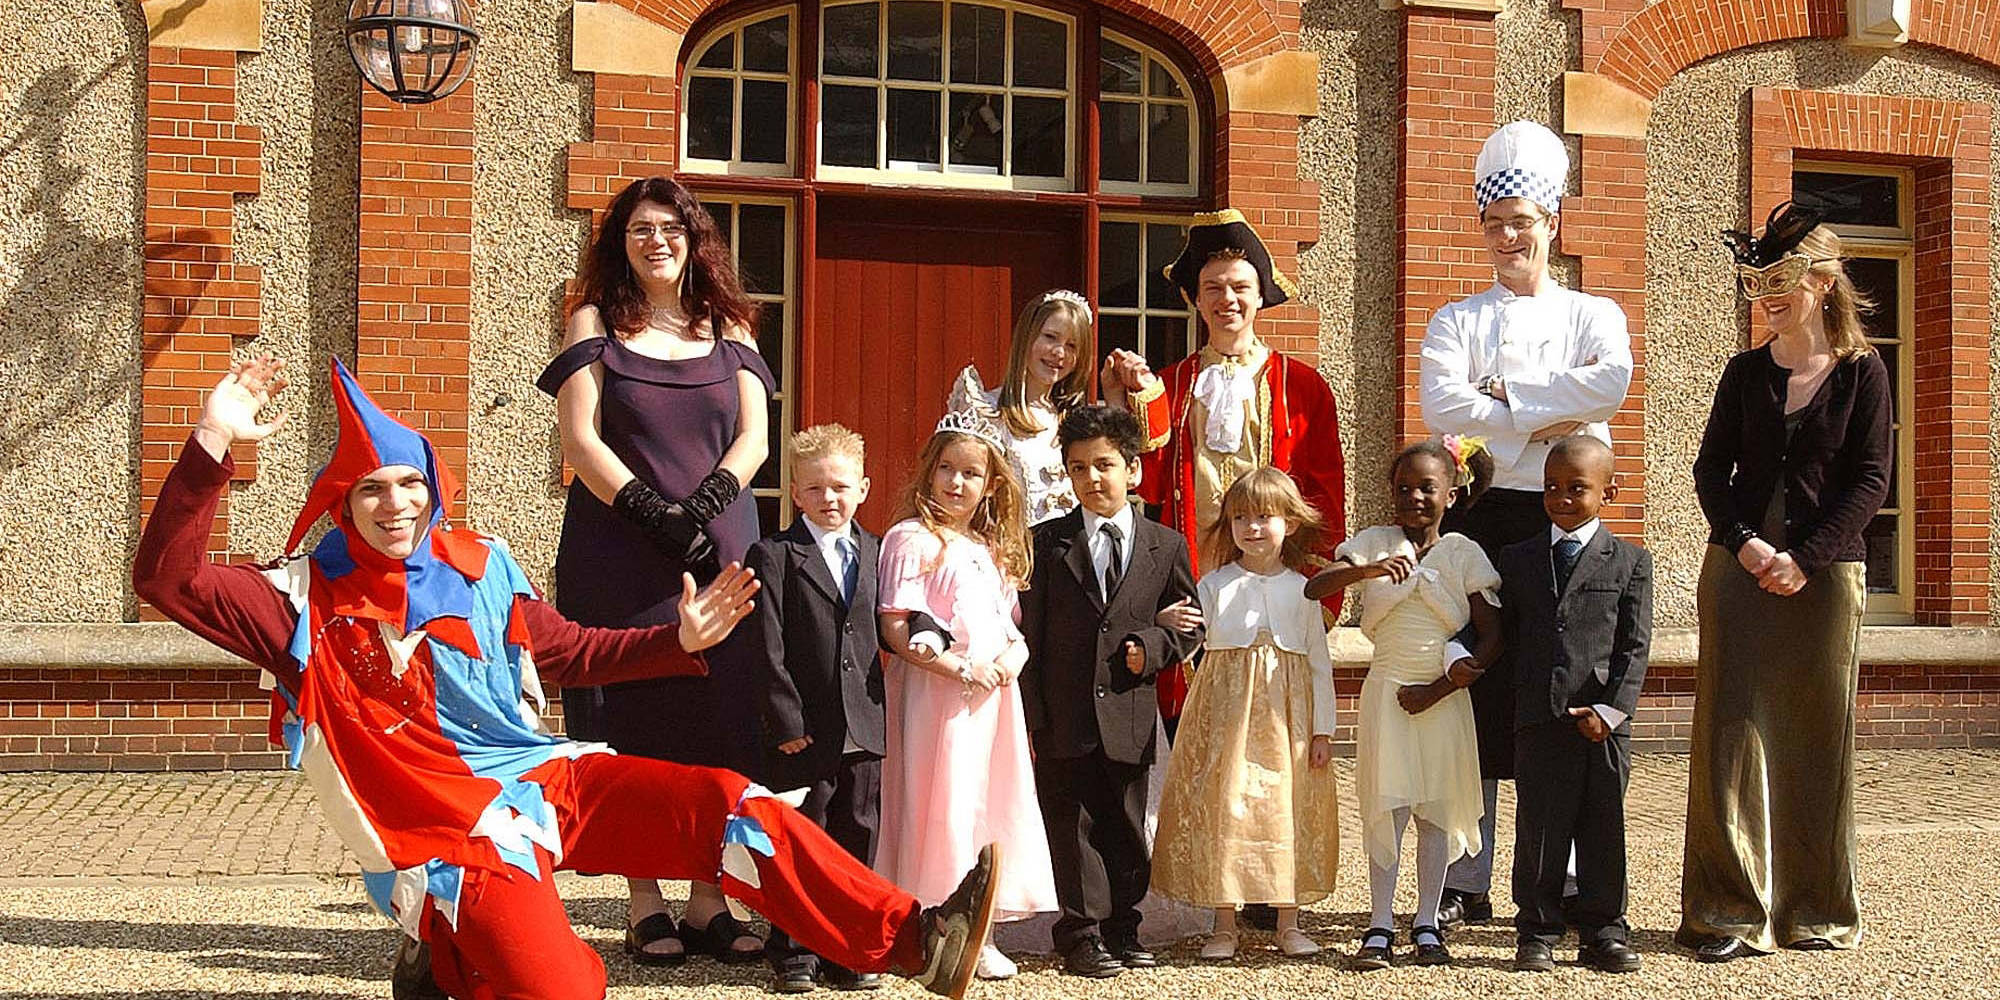 school-knight-princesses-stables-shop-ashmead-school-3000-1875